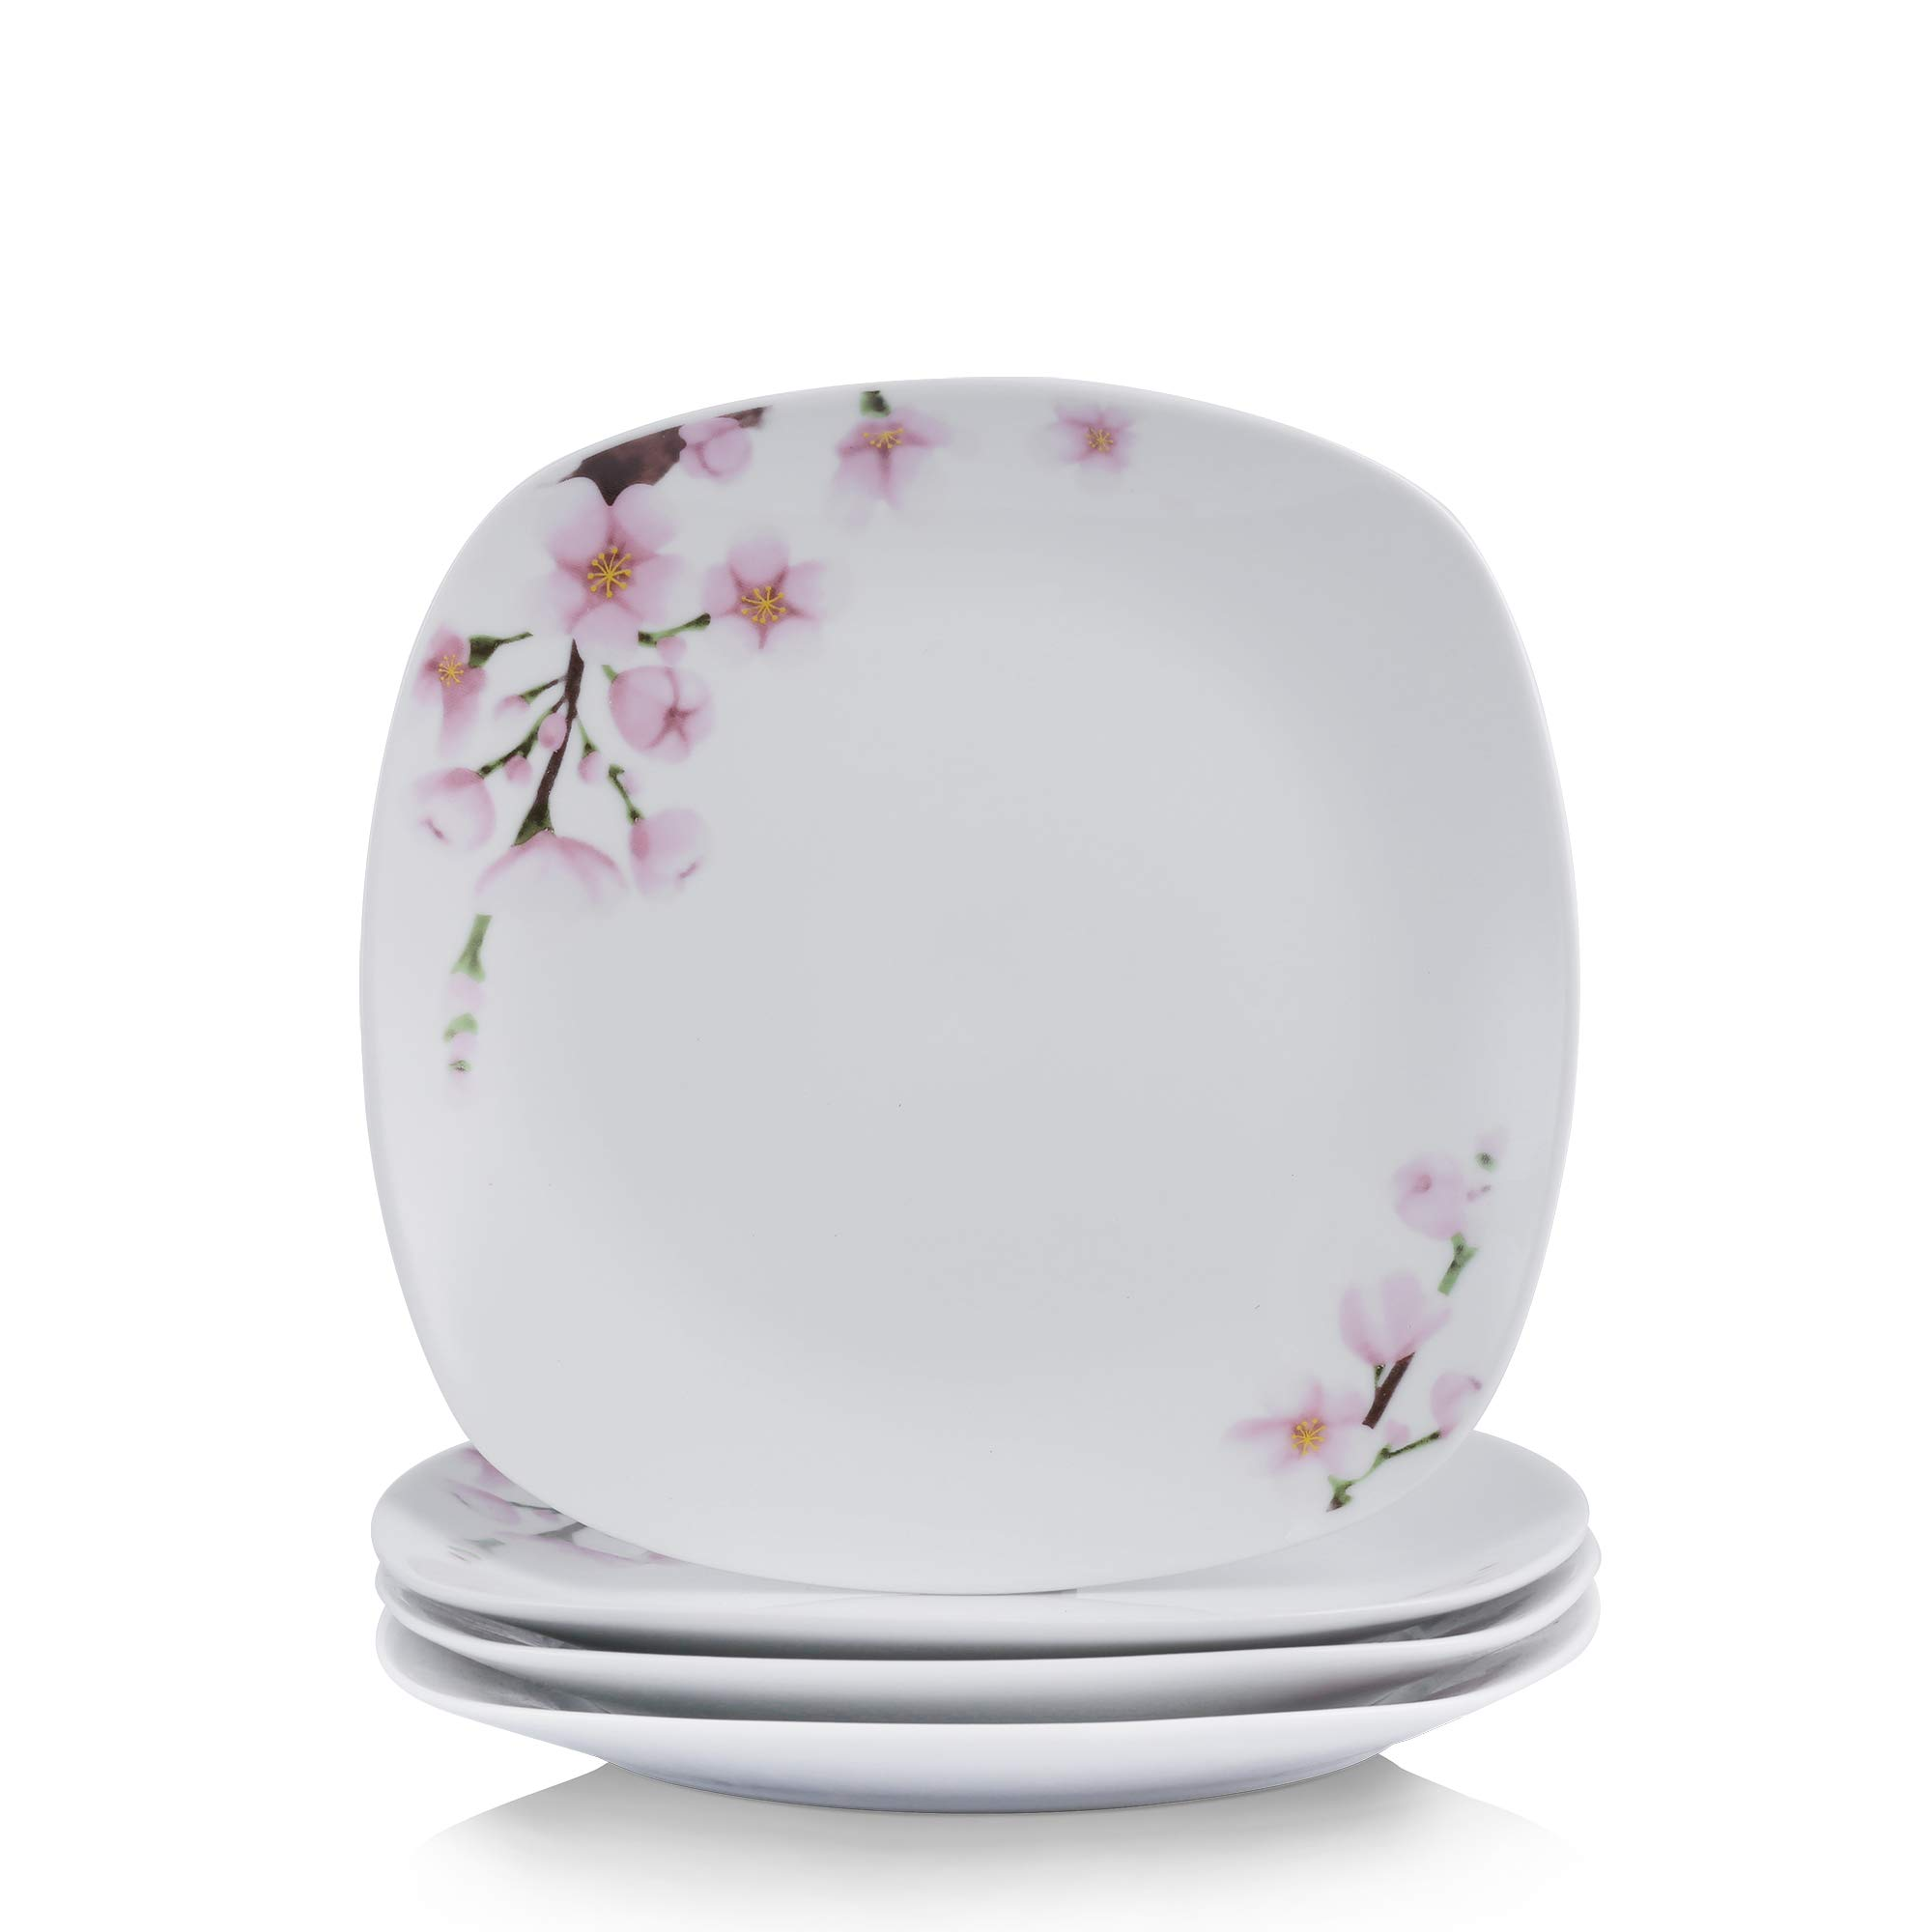 VEWEET 4-Piece Porcelain Dessert Plate Set, Durable Ivory White Bread 7-1/2 Inch Salad Plates ANNIE Series